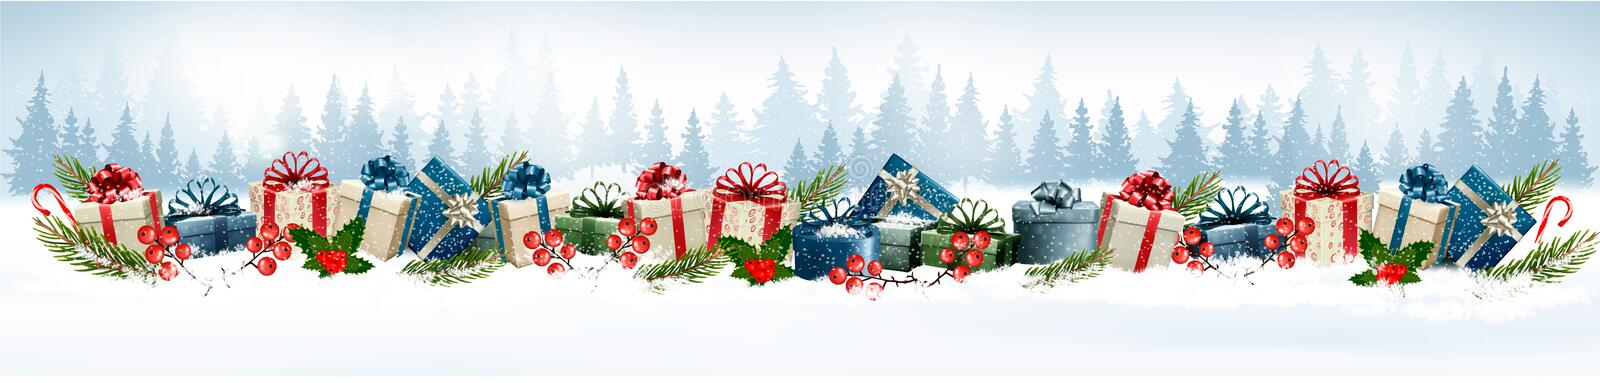 Holiday Christmas background with colorful gift boxes. royalty free illustration